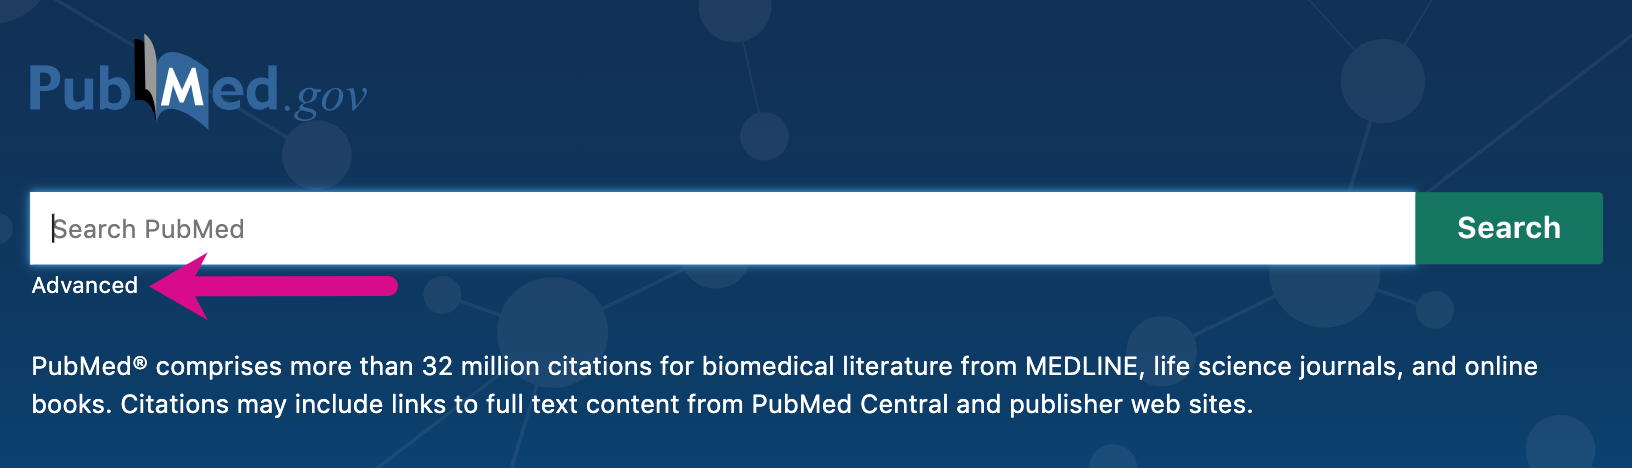 Screenshot pointing out advanced search link on PubMed homepage underneath the basic search box